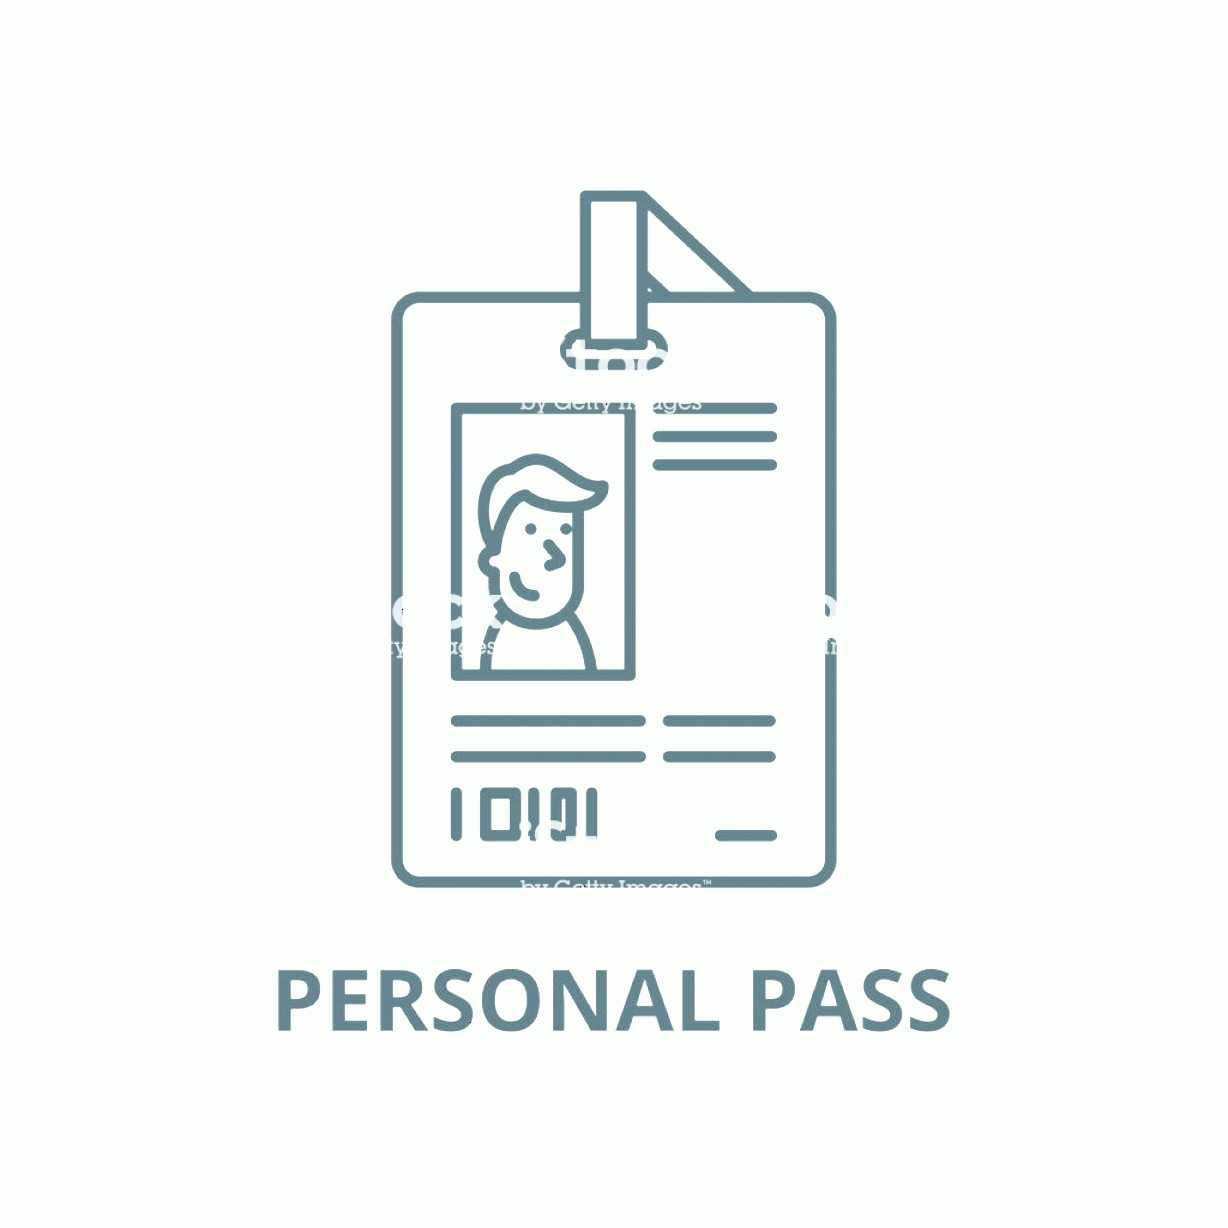 Symbol Vector Clip Art: Personal Pass Vector Line Icon Linear Concept Outline Sign Symbol Gm